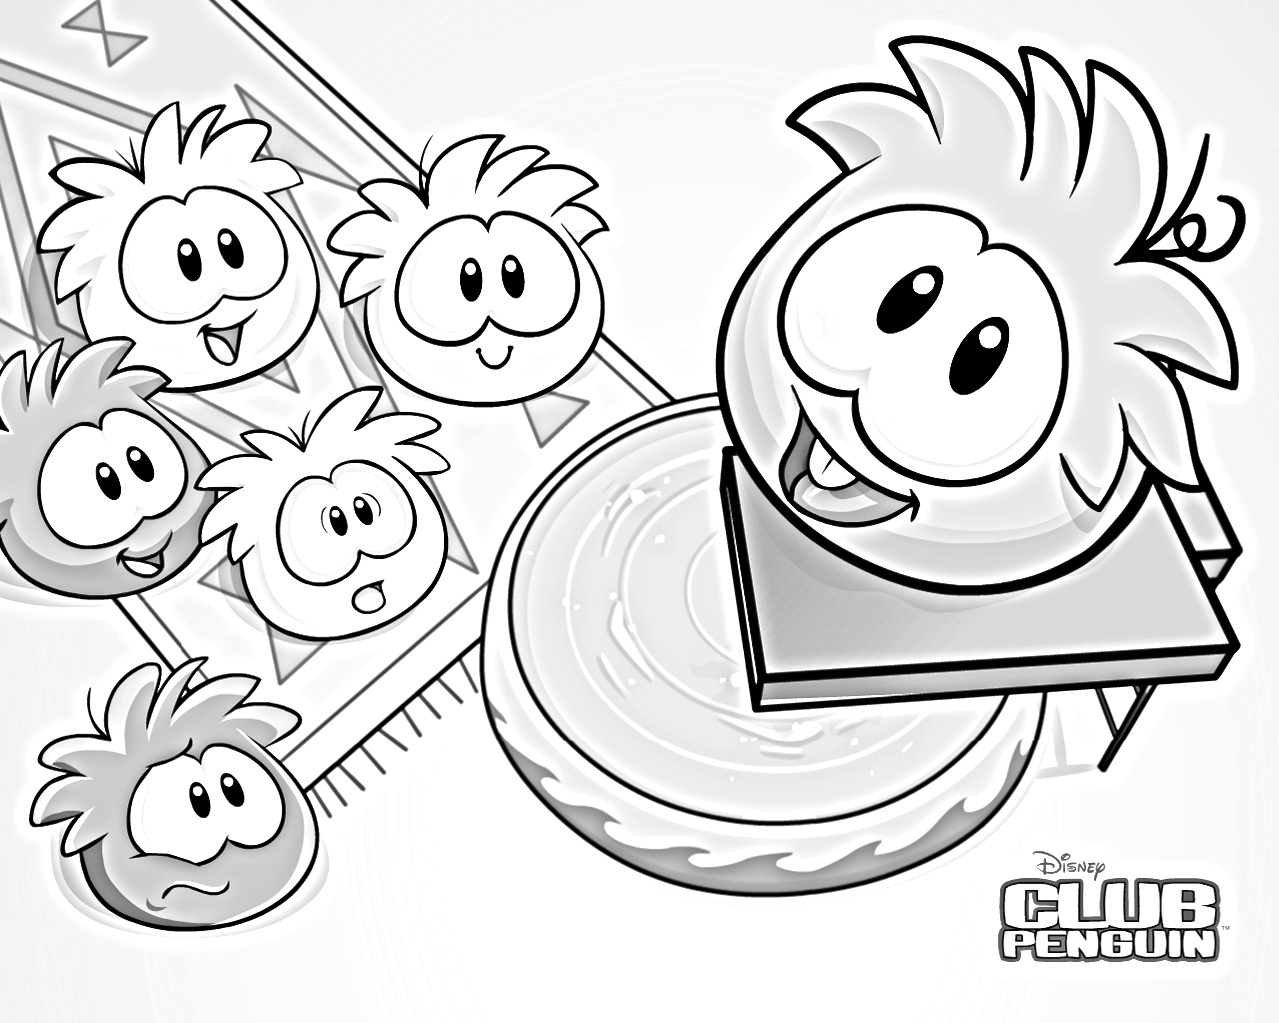 Dibujos para colorear de club penguin de puffles para for Club penguin coloring page